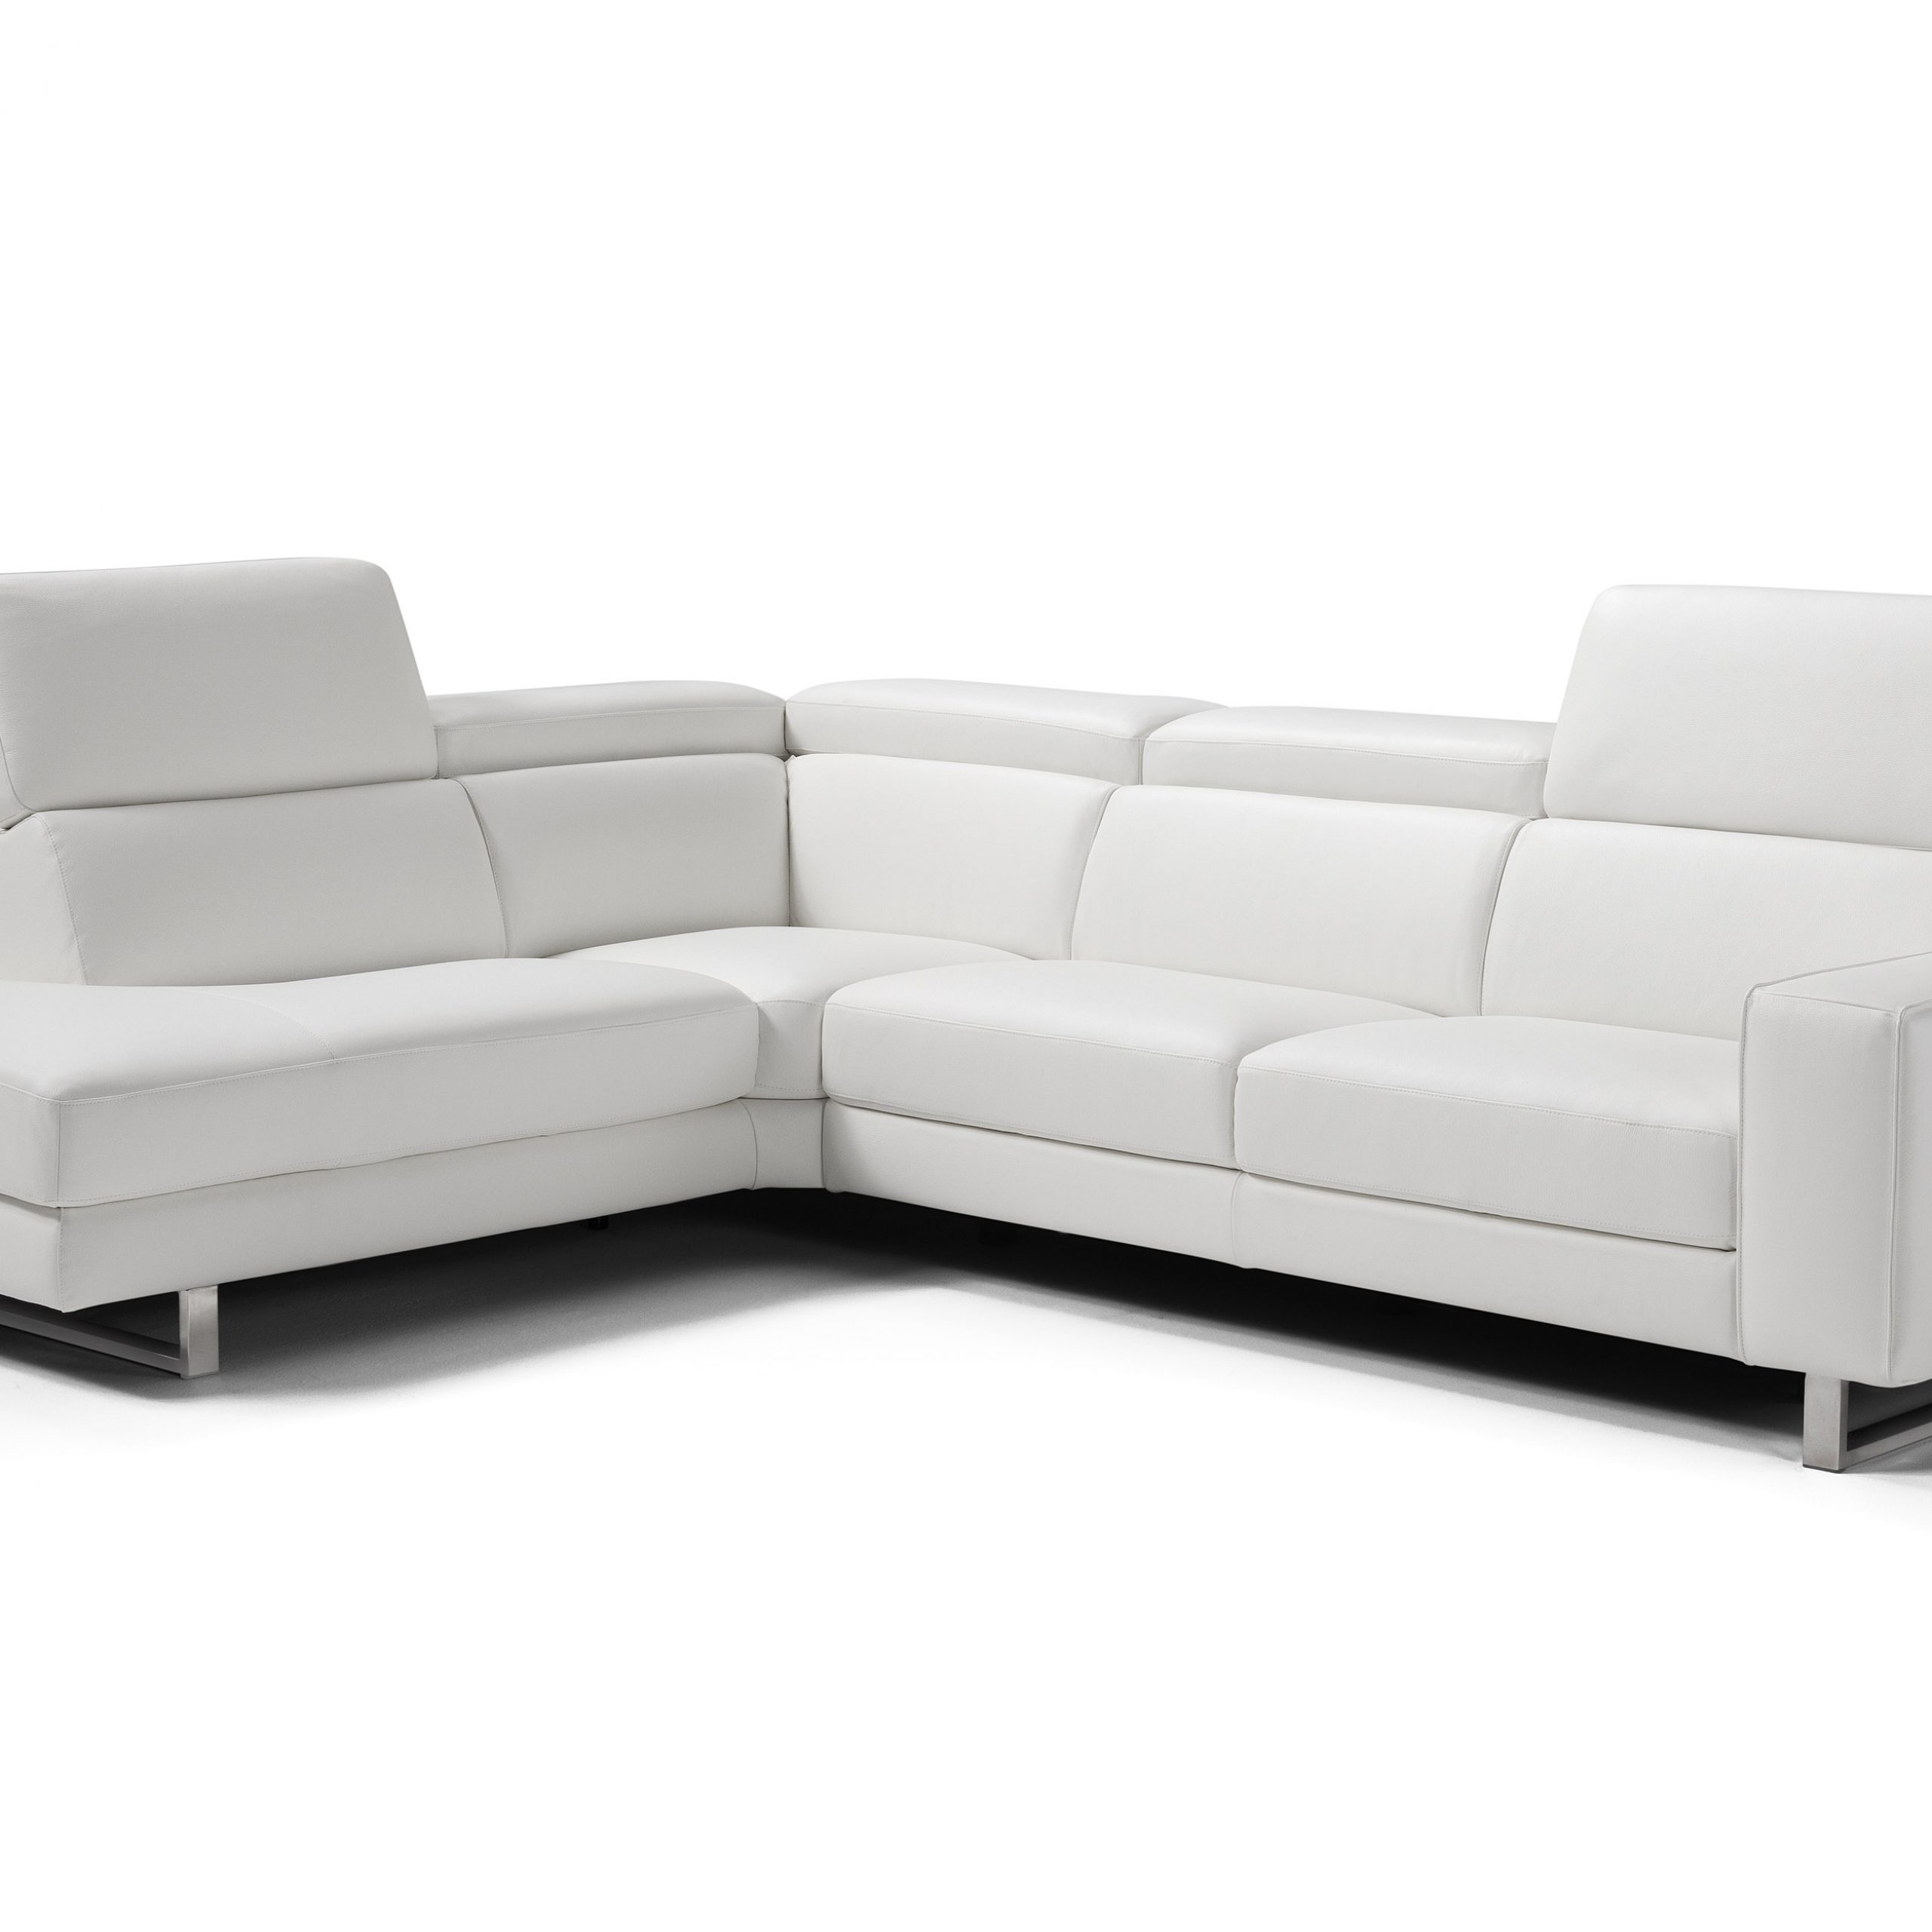 [%italian Top Grain Leather Sectional With Adjustable For Latest Matilda 100% Top Grain Leather Chaise Sectional Sofas|matilda 100% Top Grain Leather Chaise Sectional Sofas Intended For Well Liked Italian Top Grain Leather Sectional With Adjustable|most Recently Released Matilda 100% Top Grain Leather Chaise Sectional Sofas In Italian Top Grain Leather Sectional With Adjustable|current Italian Top Grain Leather Sectional With Adjustable In Matilda 100% Top Grain Leather Chaise Sectional Sofas%] (View 6 of 20)